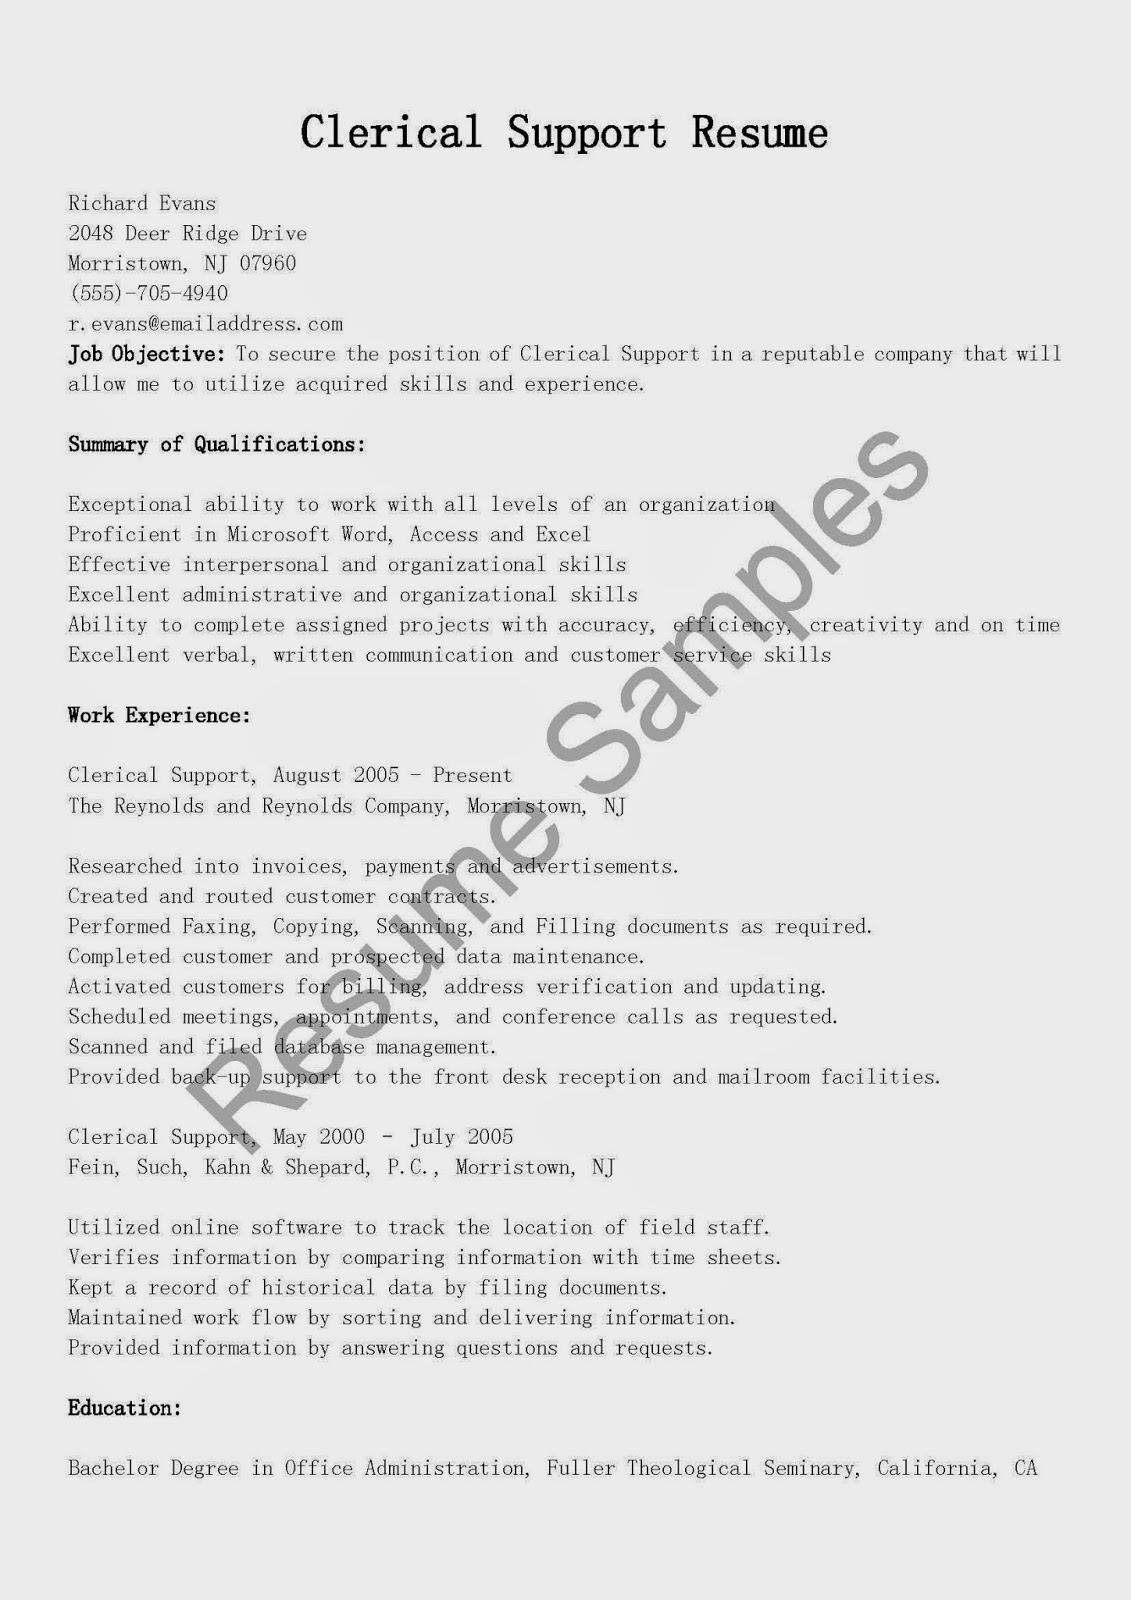 Clerical Resume Objectives Resume Samples Clerical Support Resume Sample